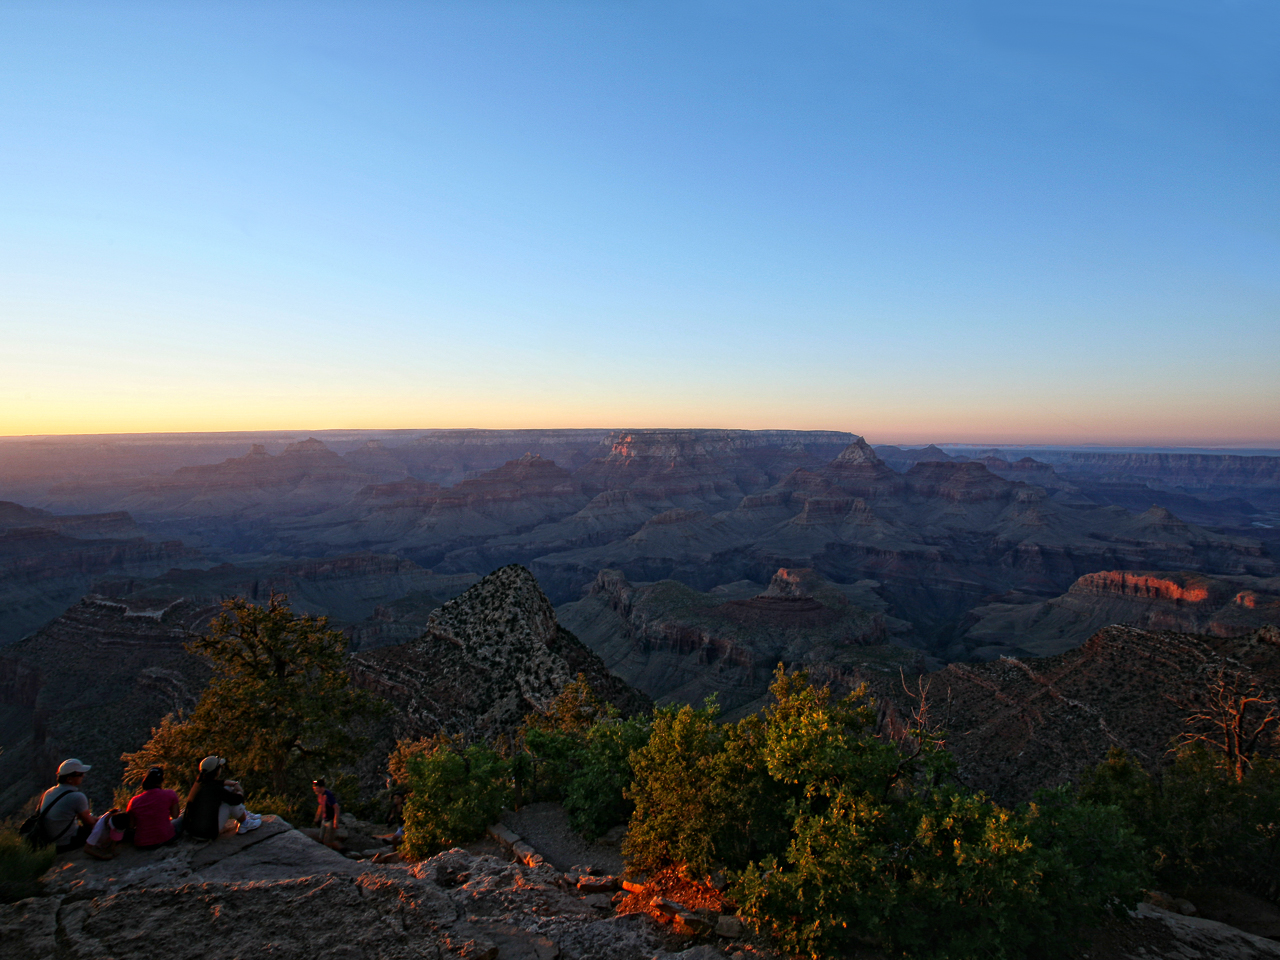 Sunrise (at Grand Canyon)